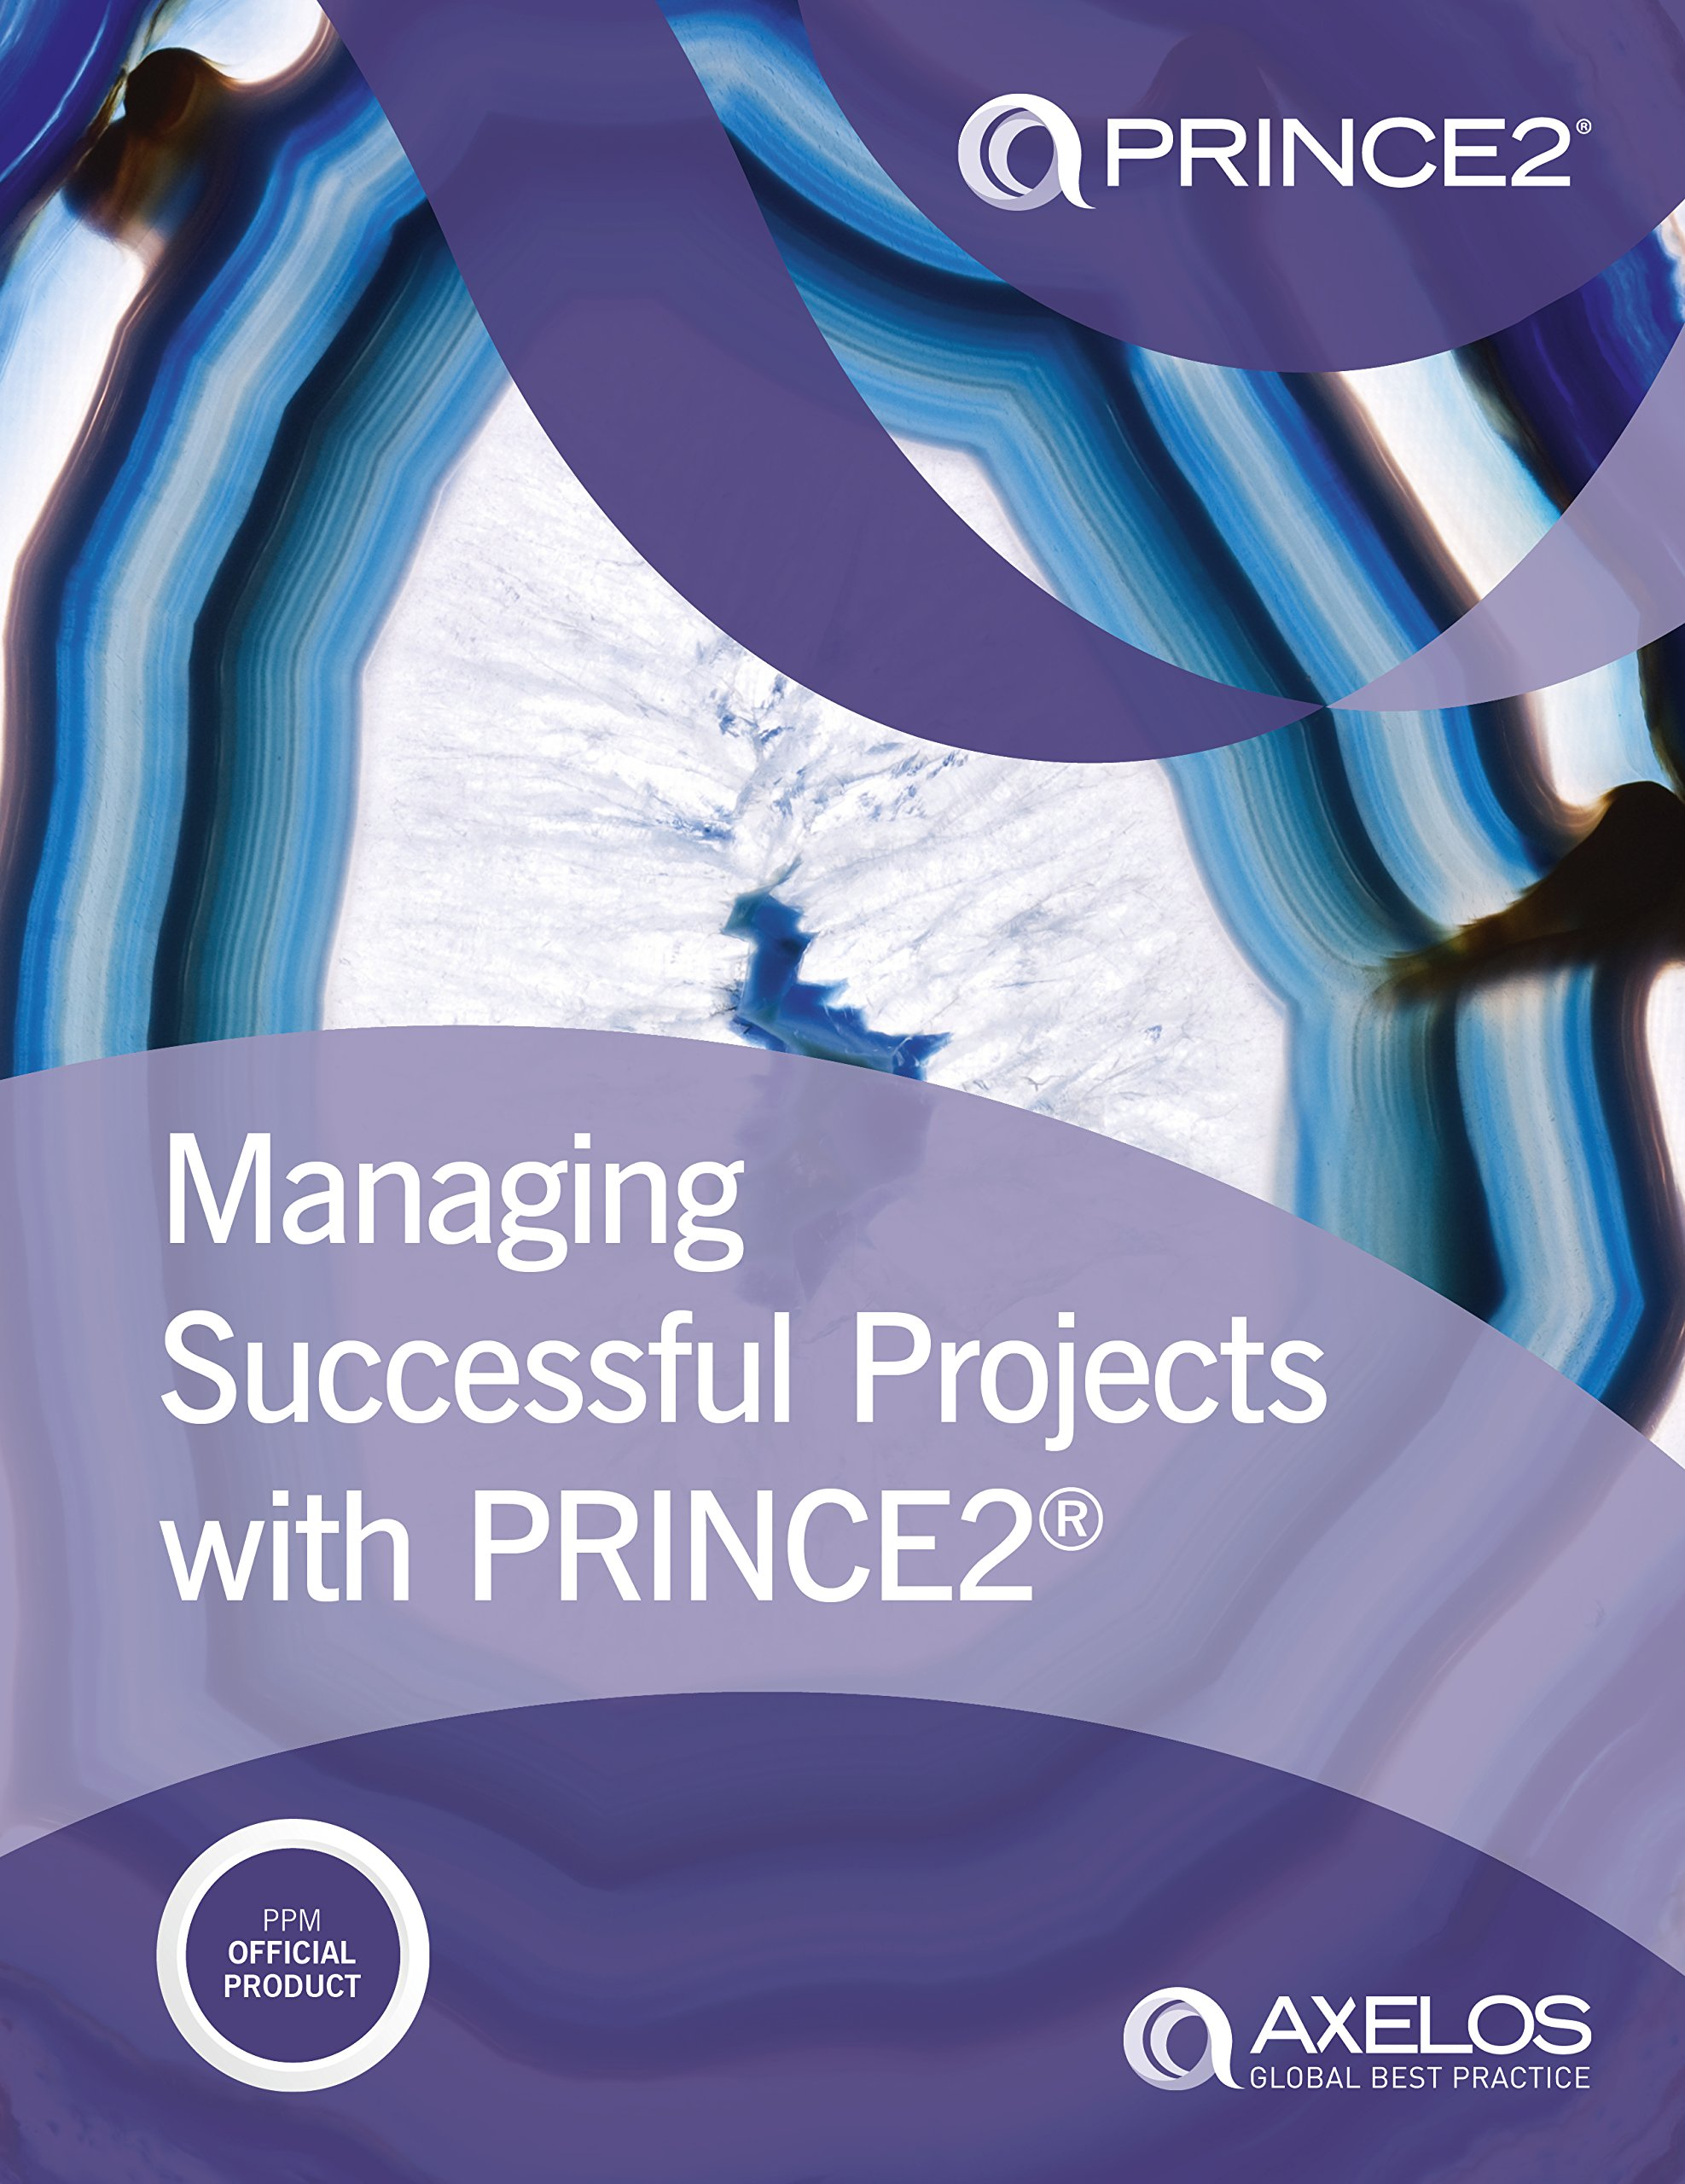 Managing successful projects with PRINCE2: Amazon.co.uk: Nigel Bennett,  AXELOS: 9780113315338: Books